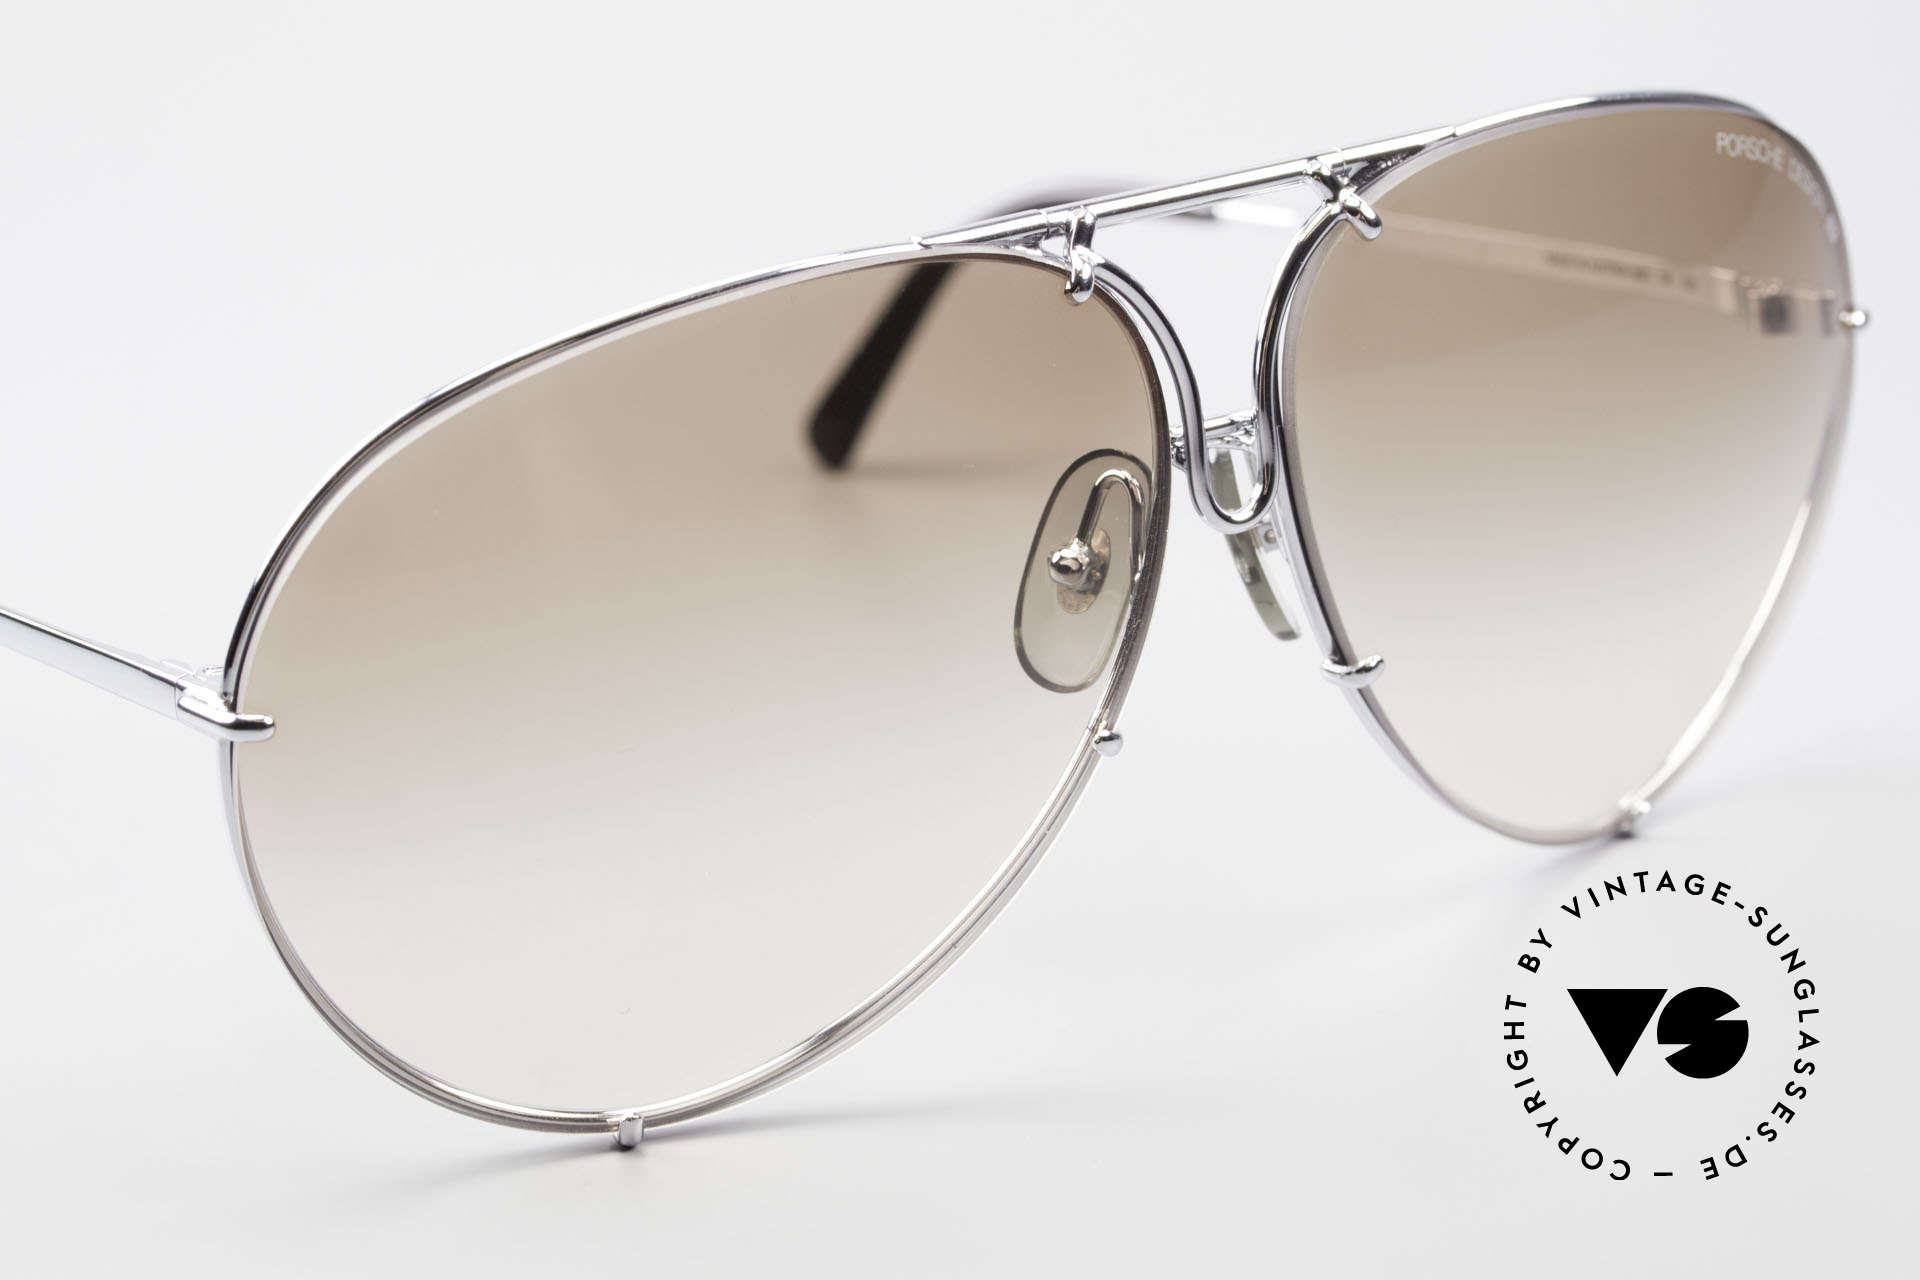 Porsche 5621 80's Sunglass Classic For Men, unworn, new old stock, incl. orig. PD box and case, Made for Men